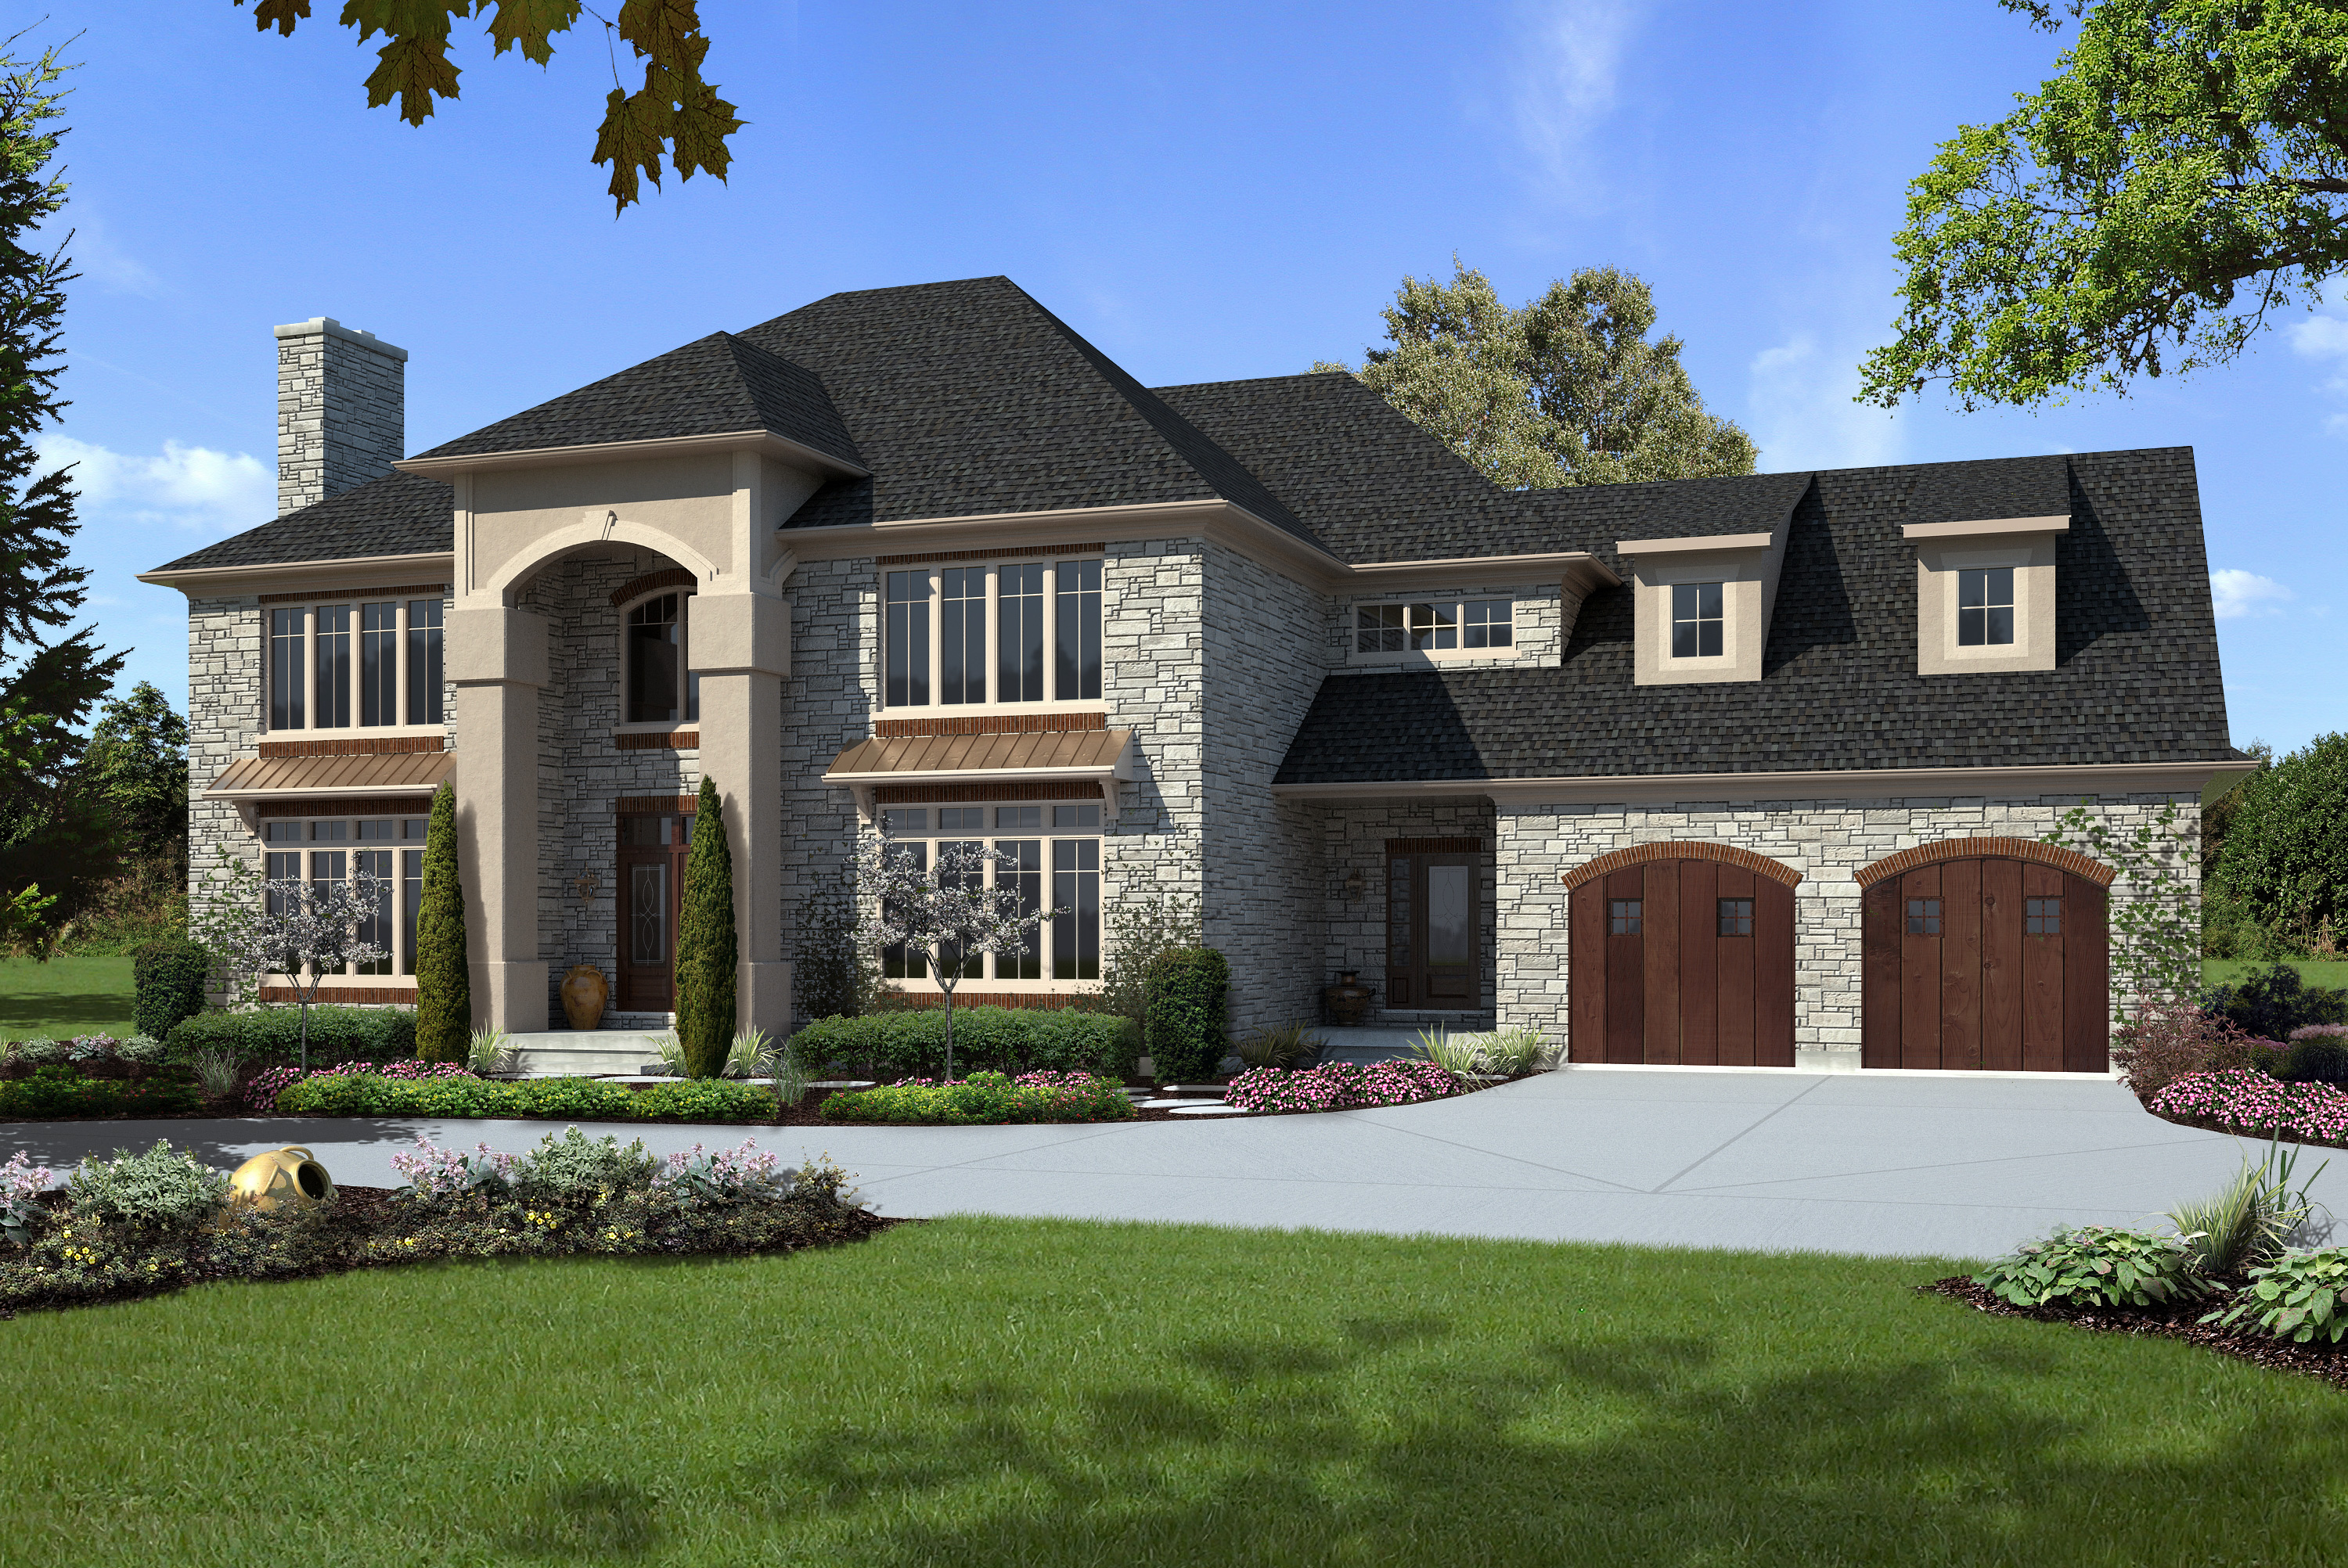 custom home designs custom house plans custom home plans custom floor plans at houseplansnet - Luxury Home Designs Plans